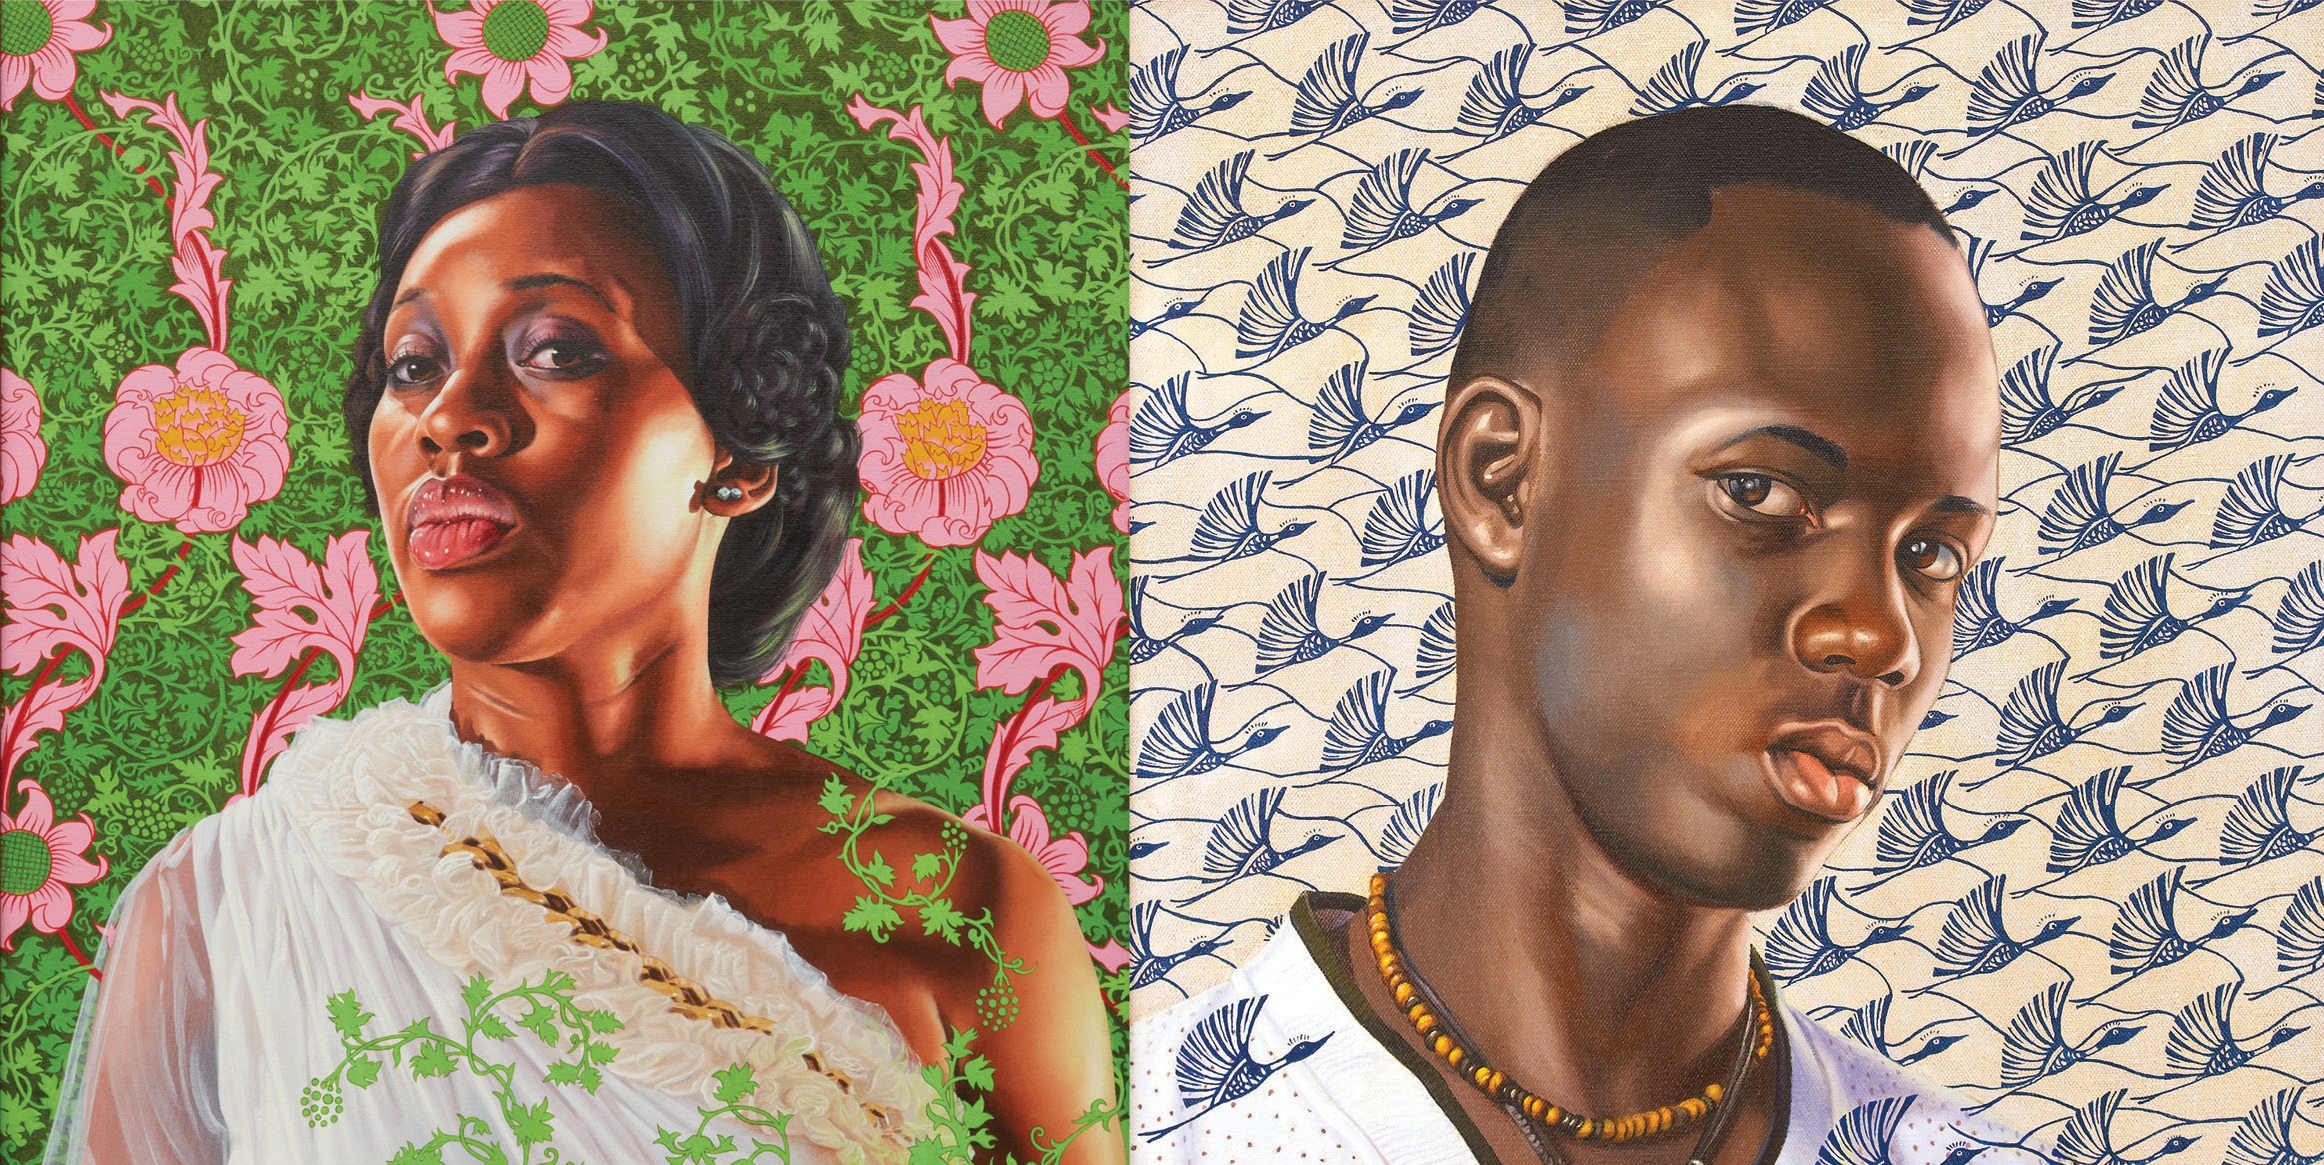 Two oil painting portraits on colorful patterned backgrounds.